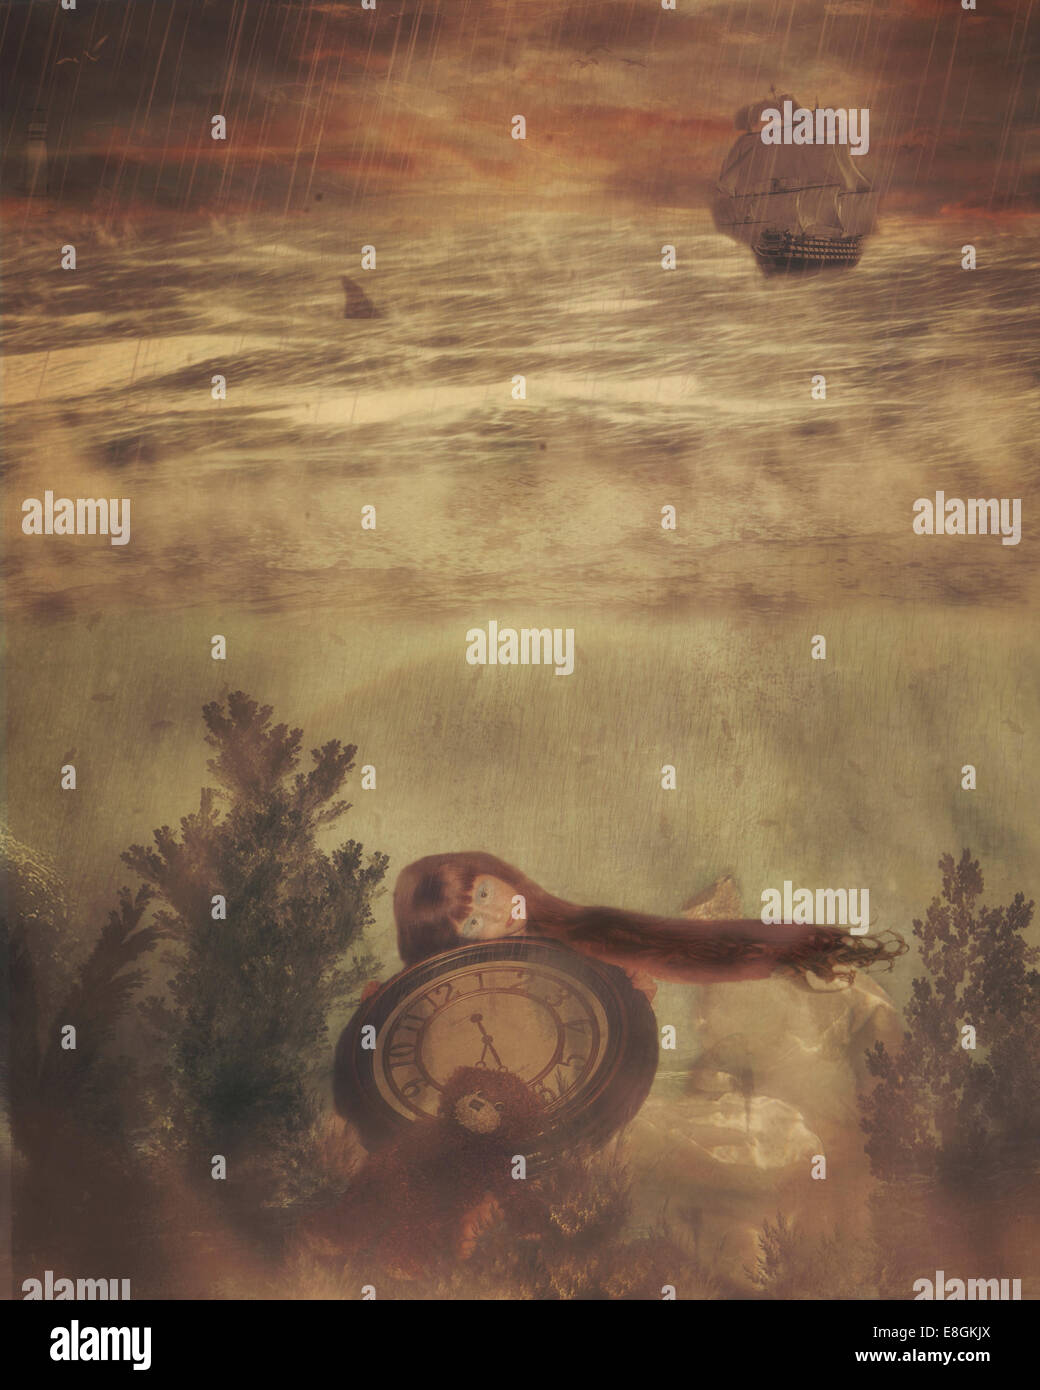 Illustration of girl holding big clock underwater - Stock Image